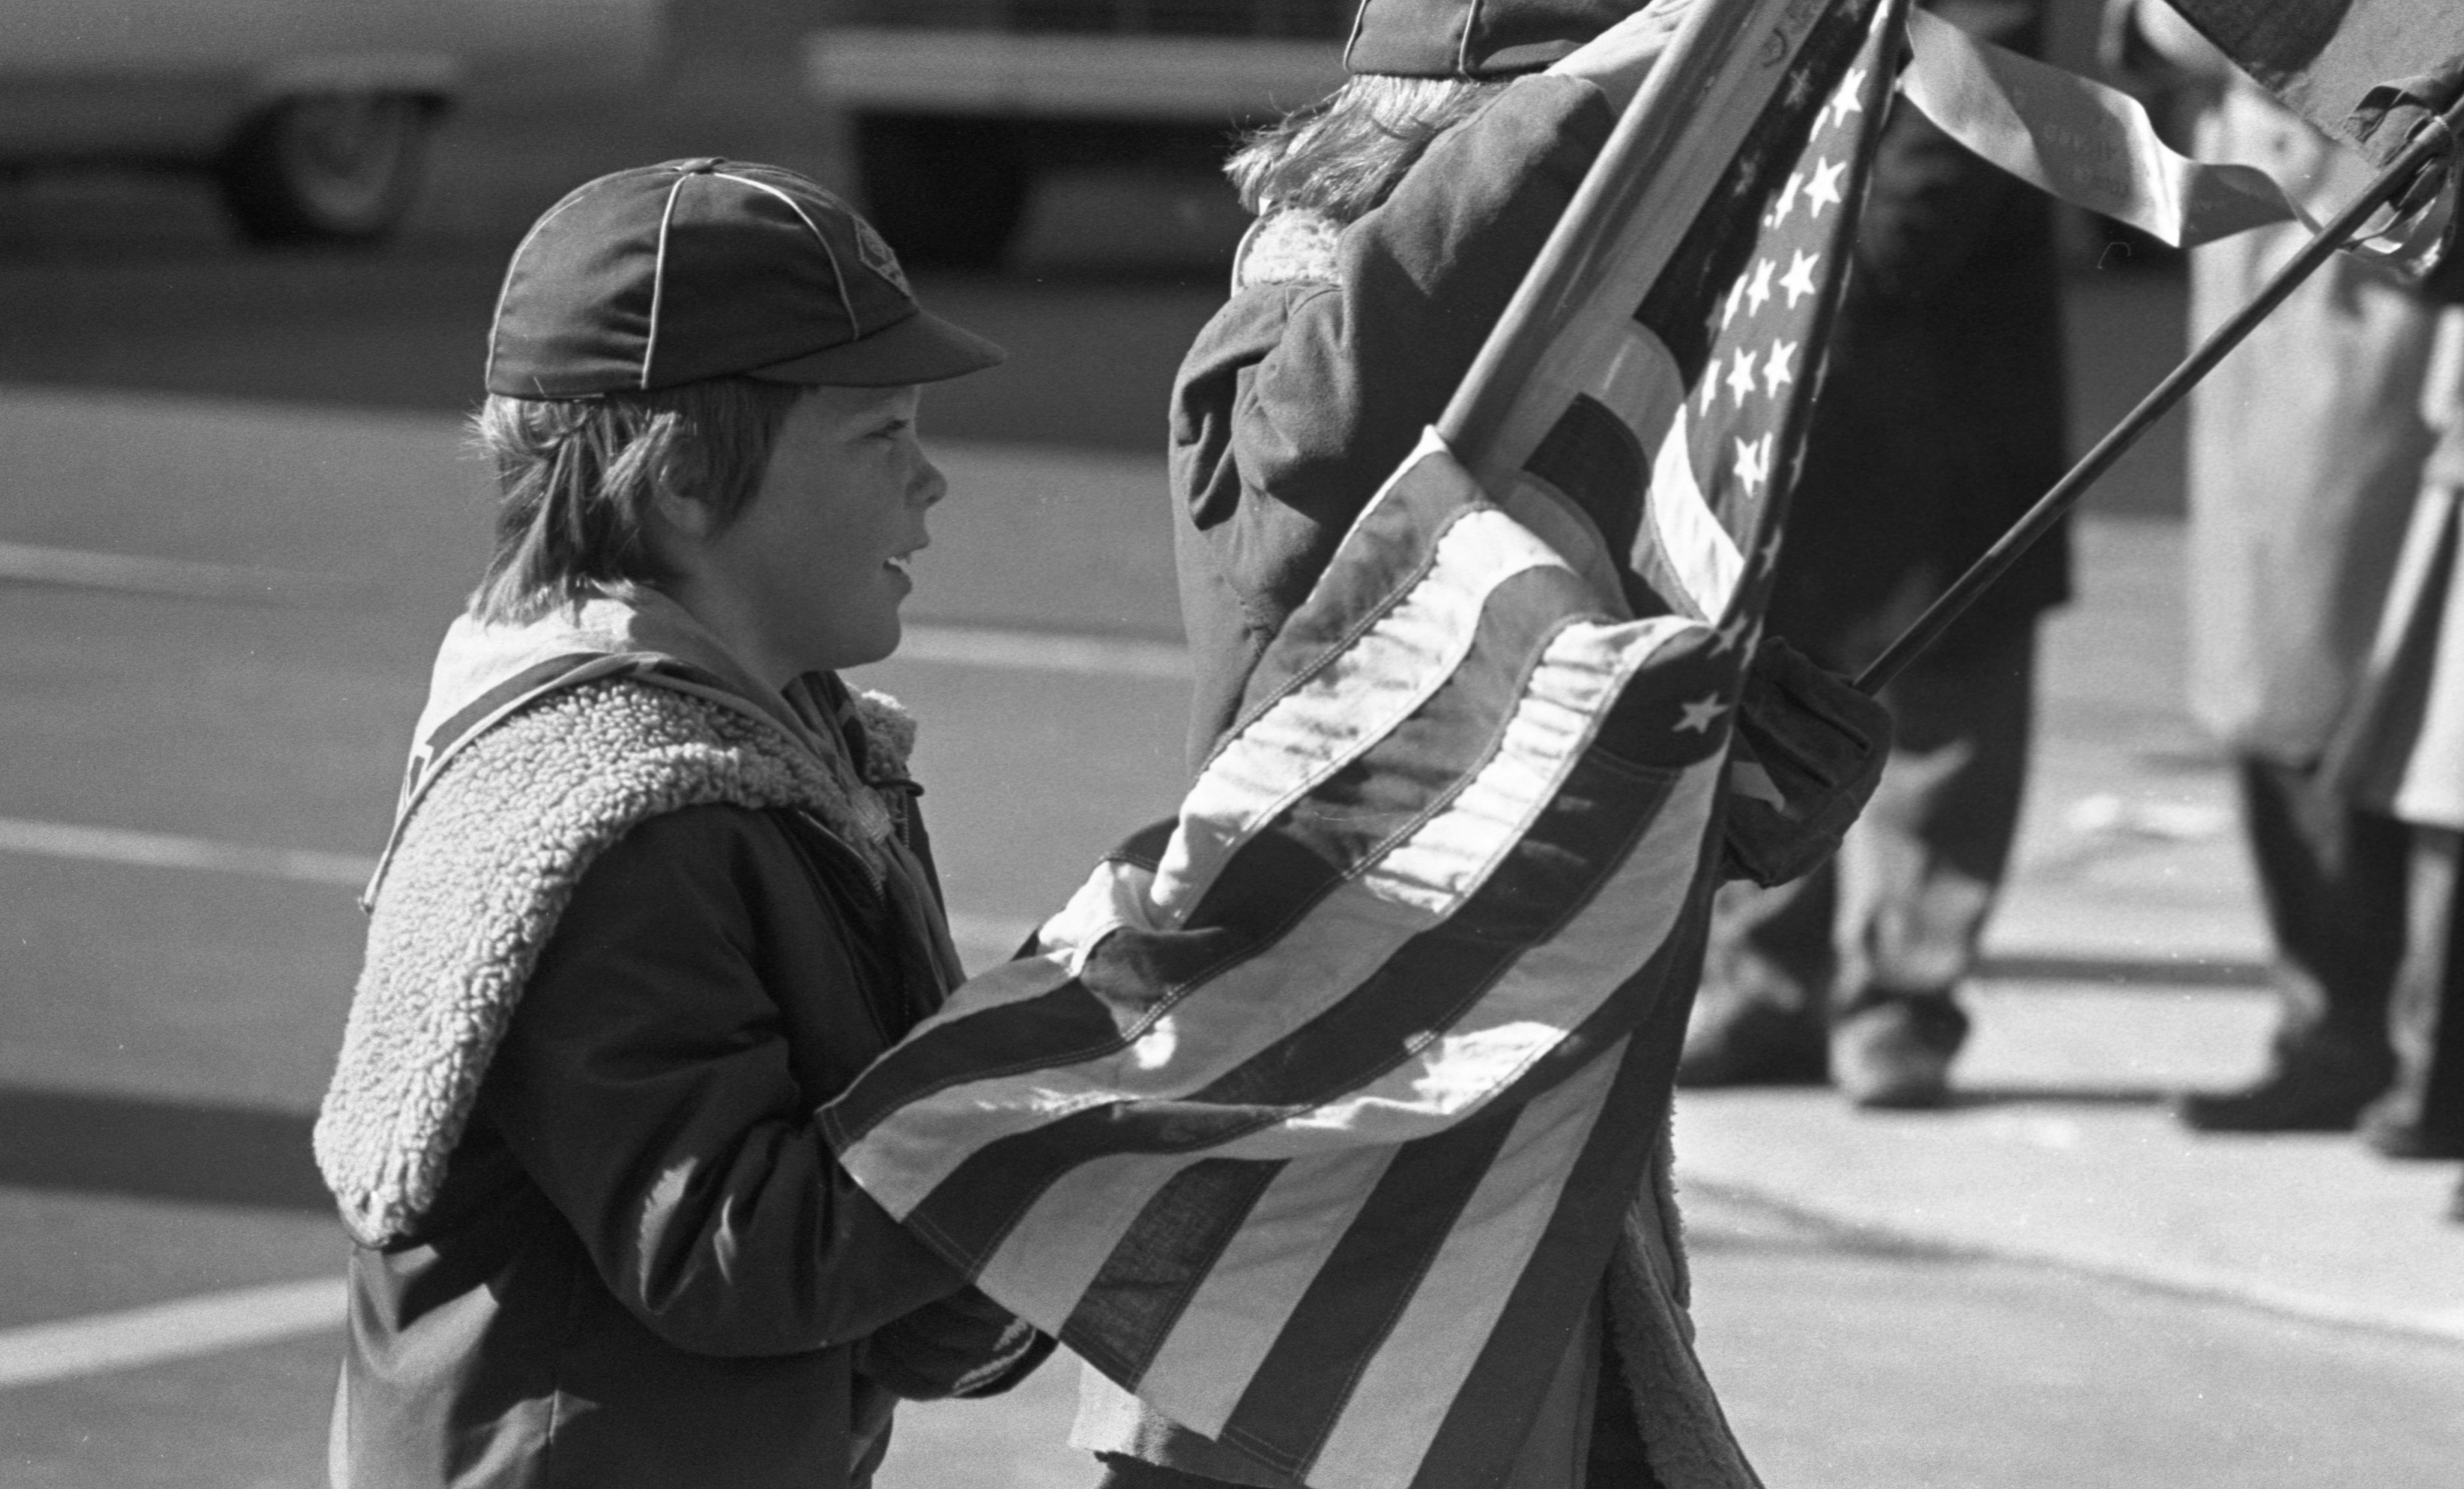 Boy Scouts March In The Ann Arbor Veterans Day Parade - November 11, 1976 image